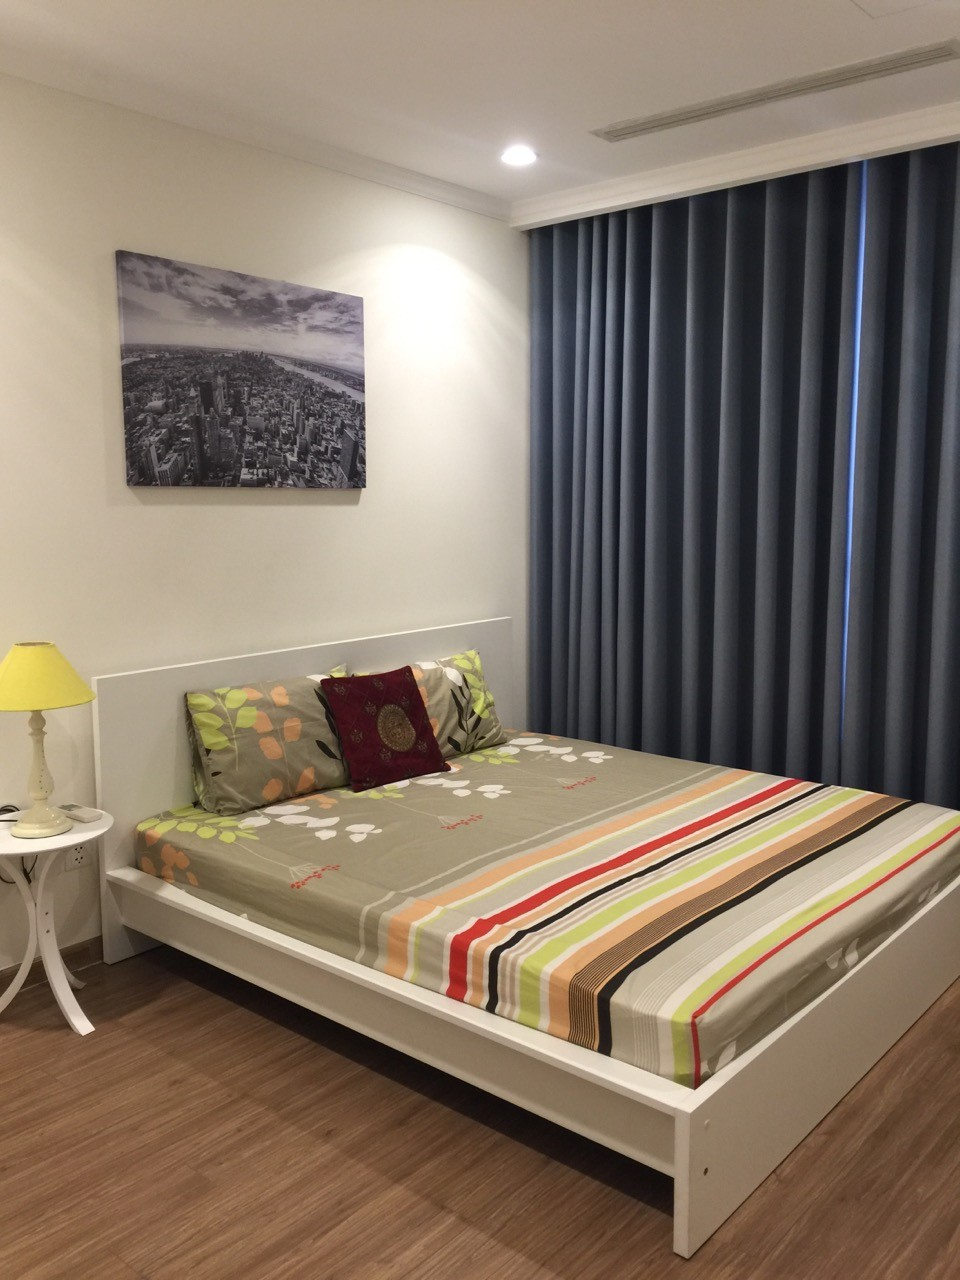 vinhomes central park apartment for rent in binh thanh district hcmc BT105L3877 (5)